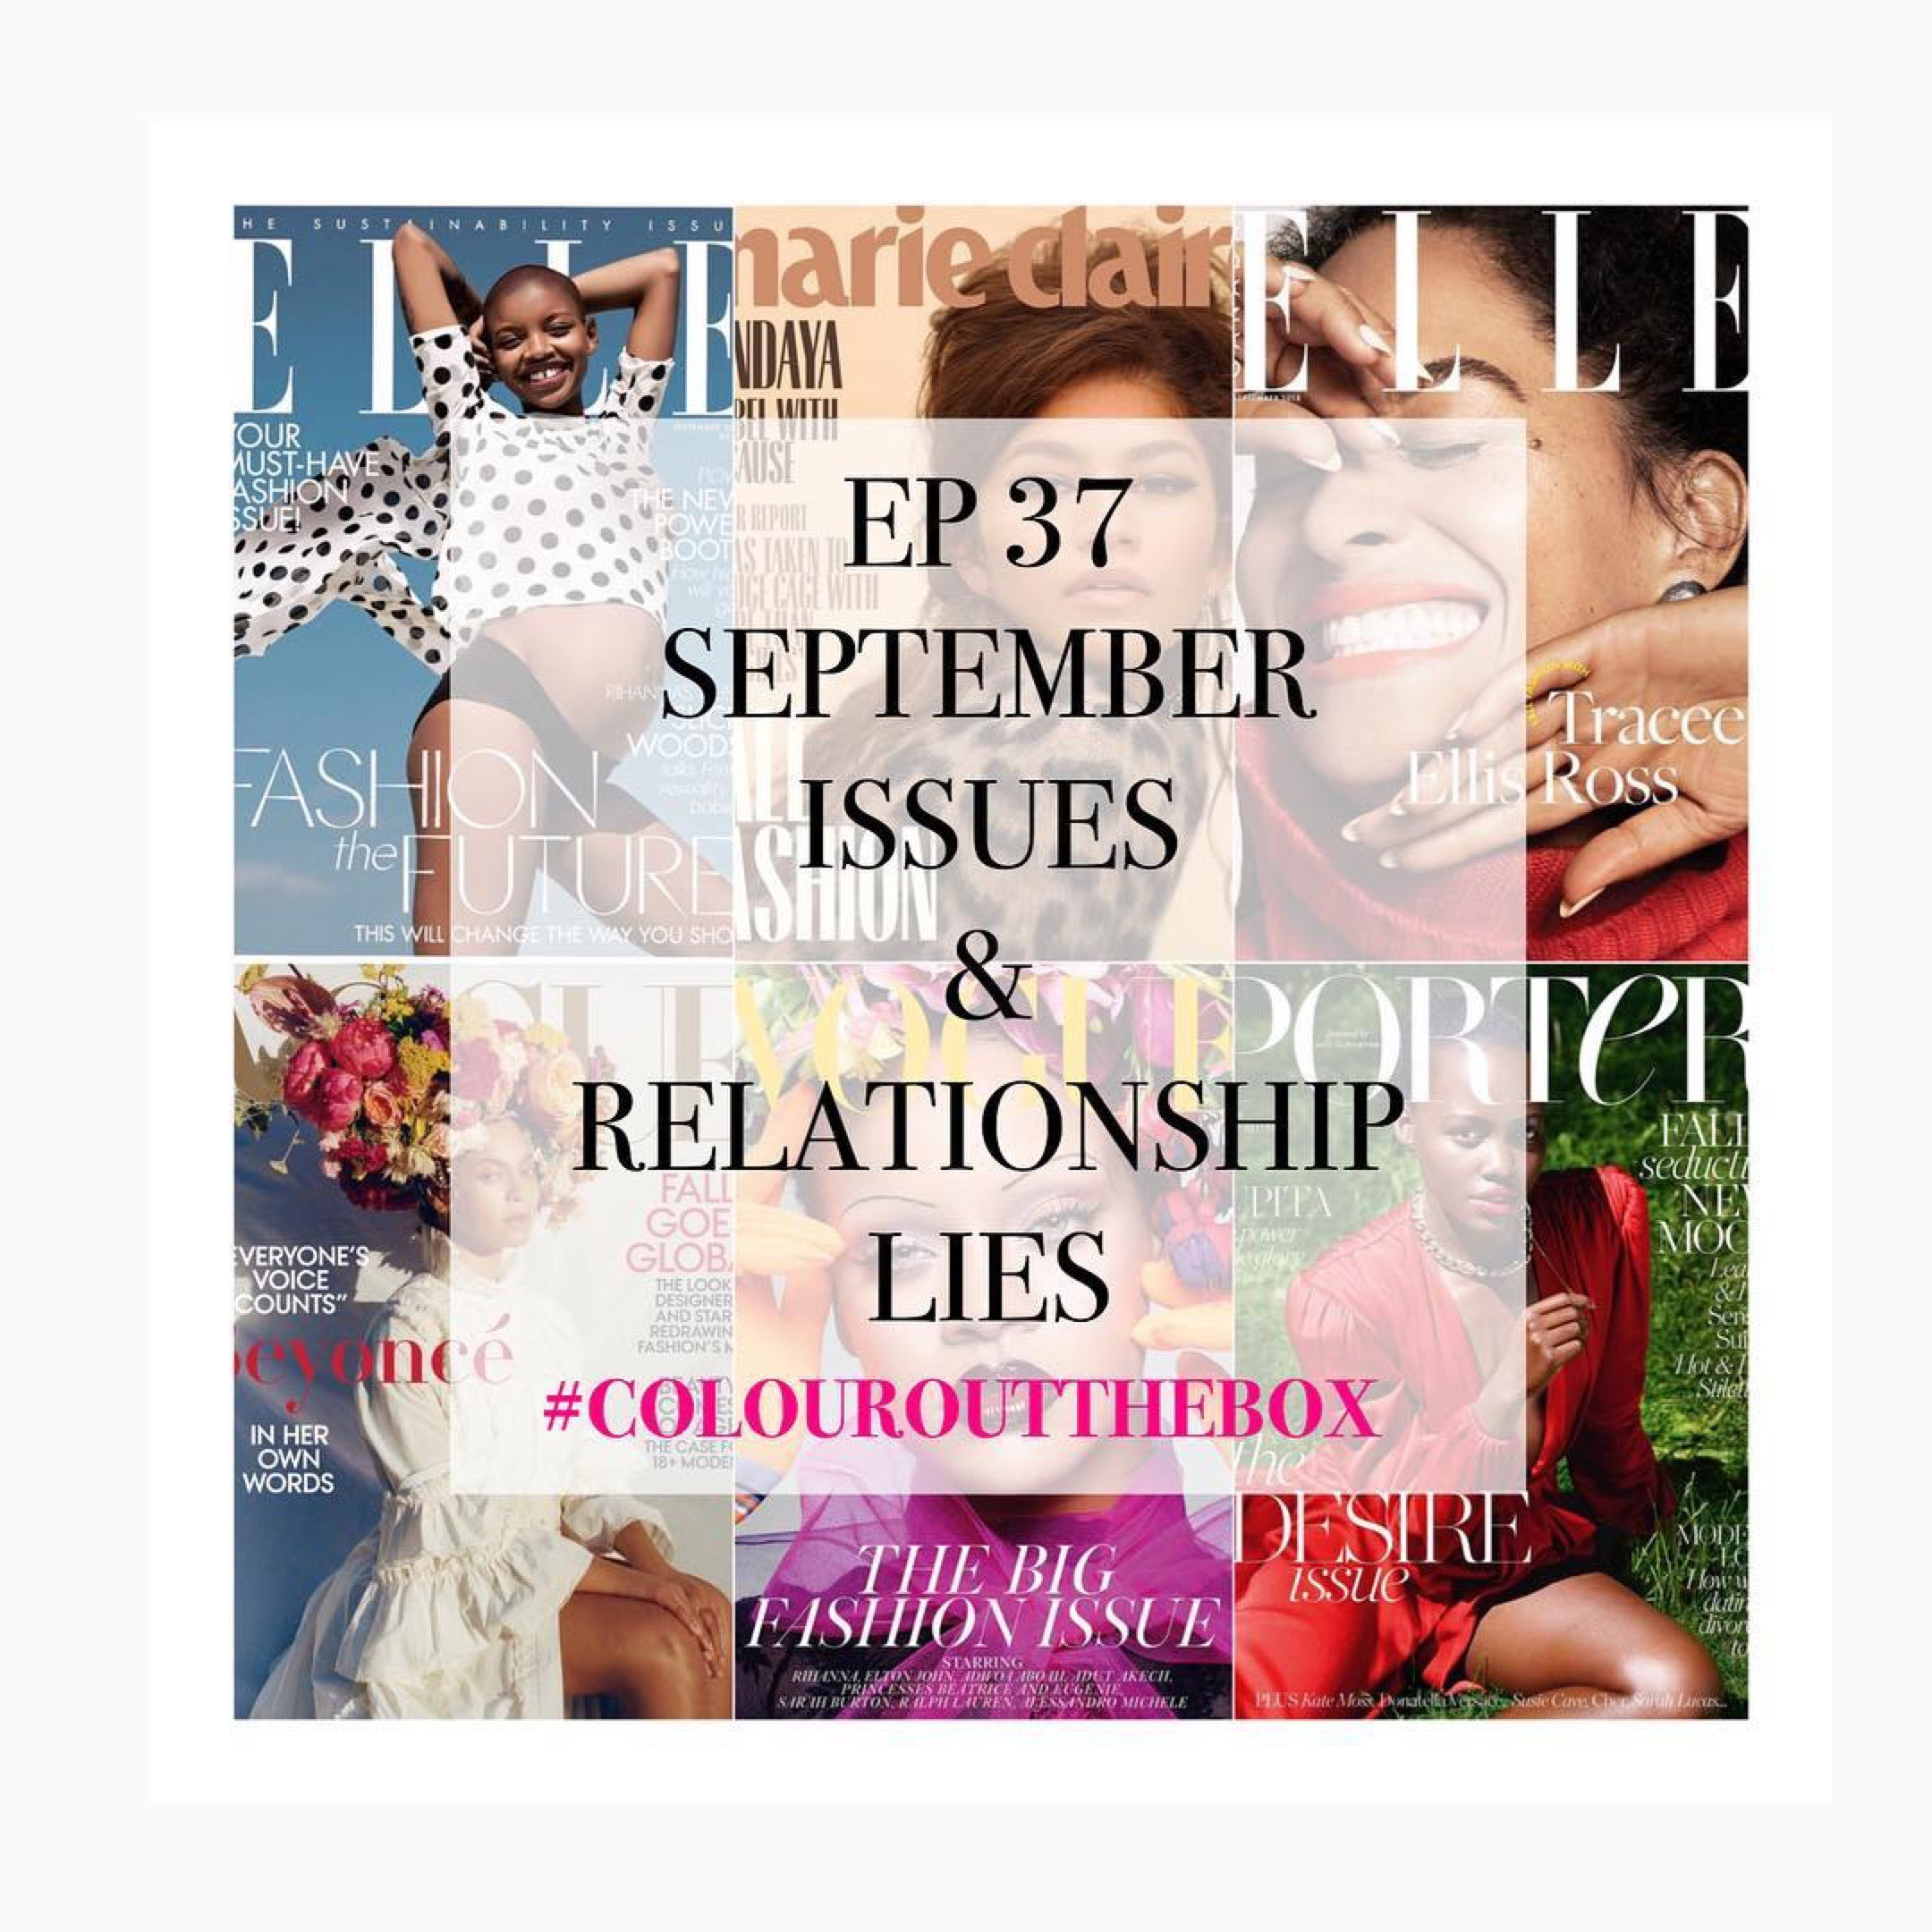 SEPTEMBER ISSUES AND RELATIONSHIP LIES: Episode 37